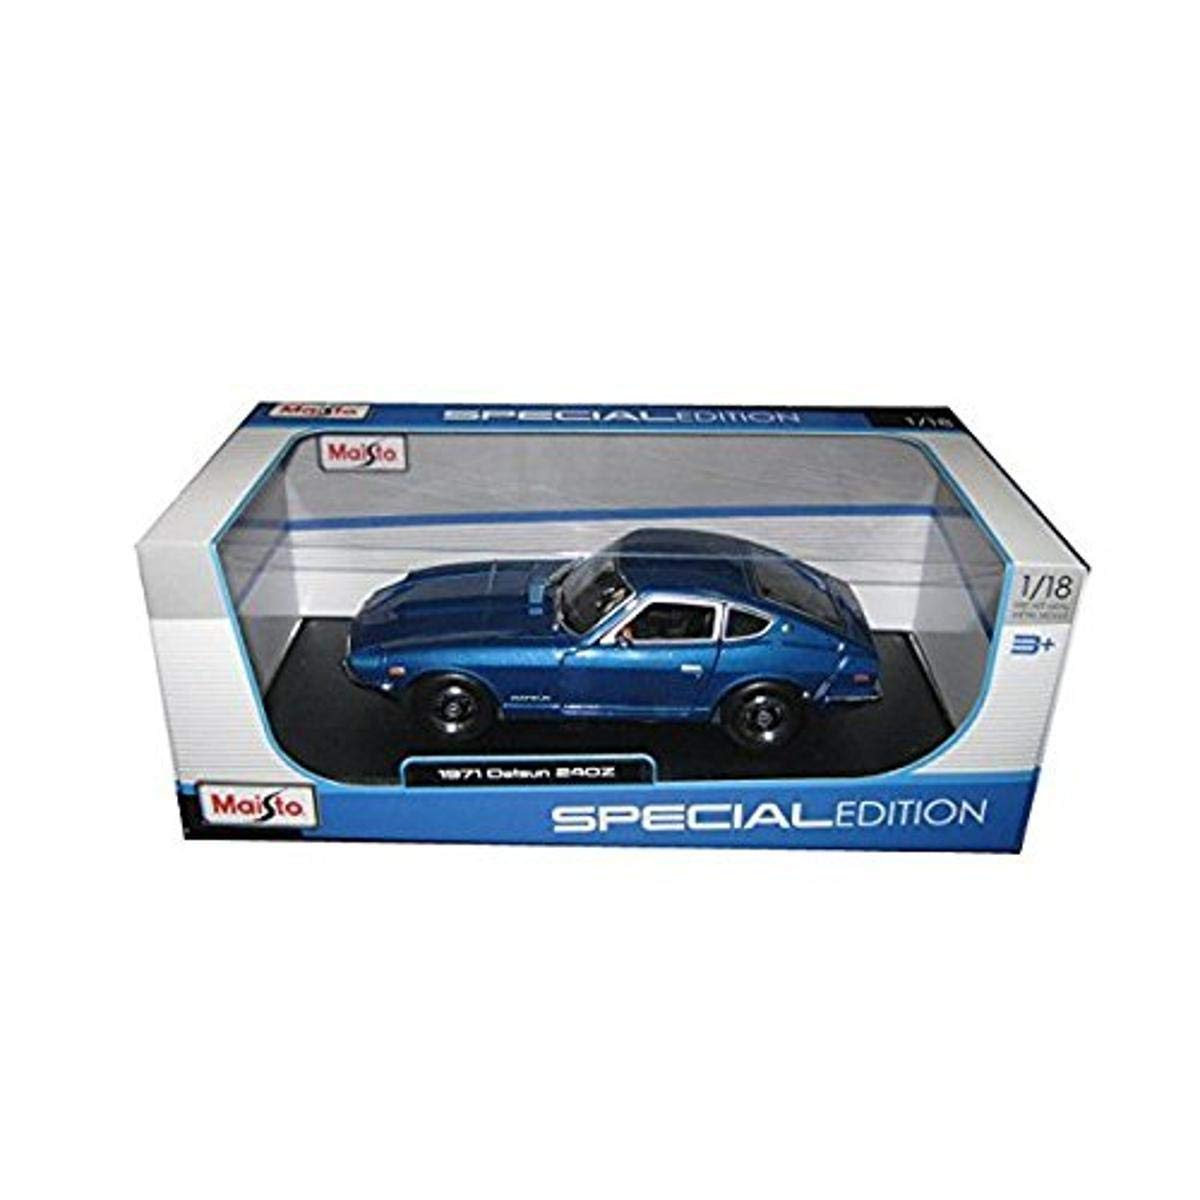 Maisto 31197Rd 1: 18 Special Edition 2015 Ford Mustang Die-Cast Vehicles, Red